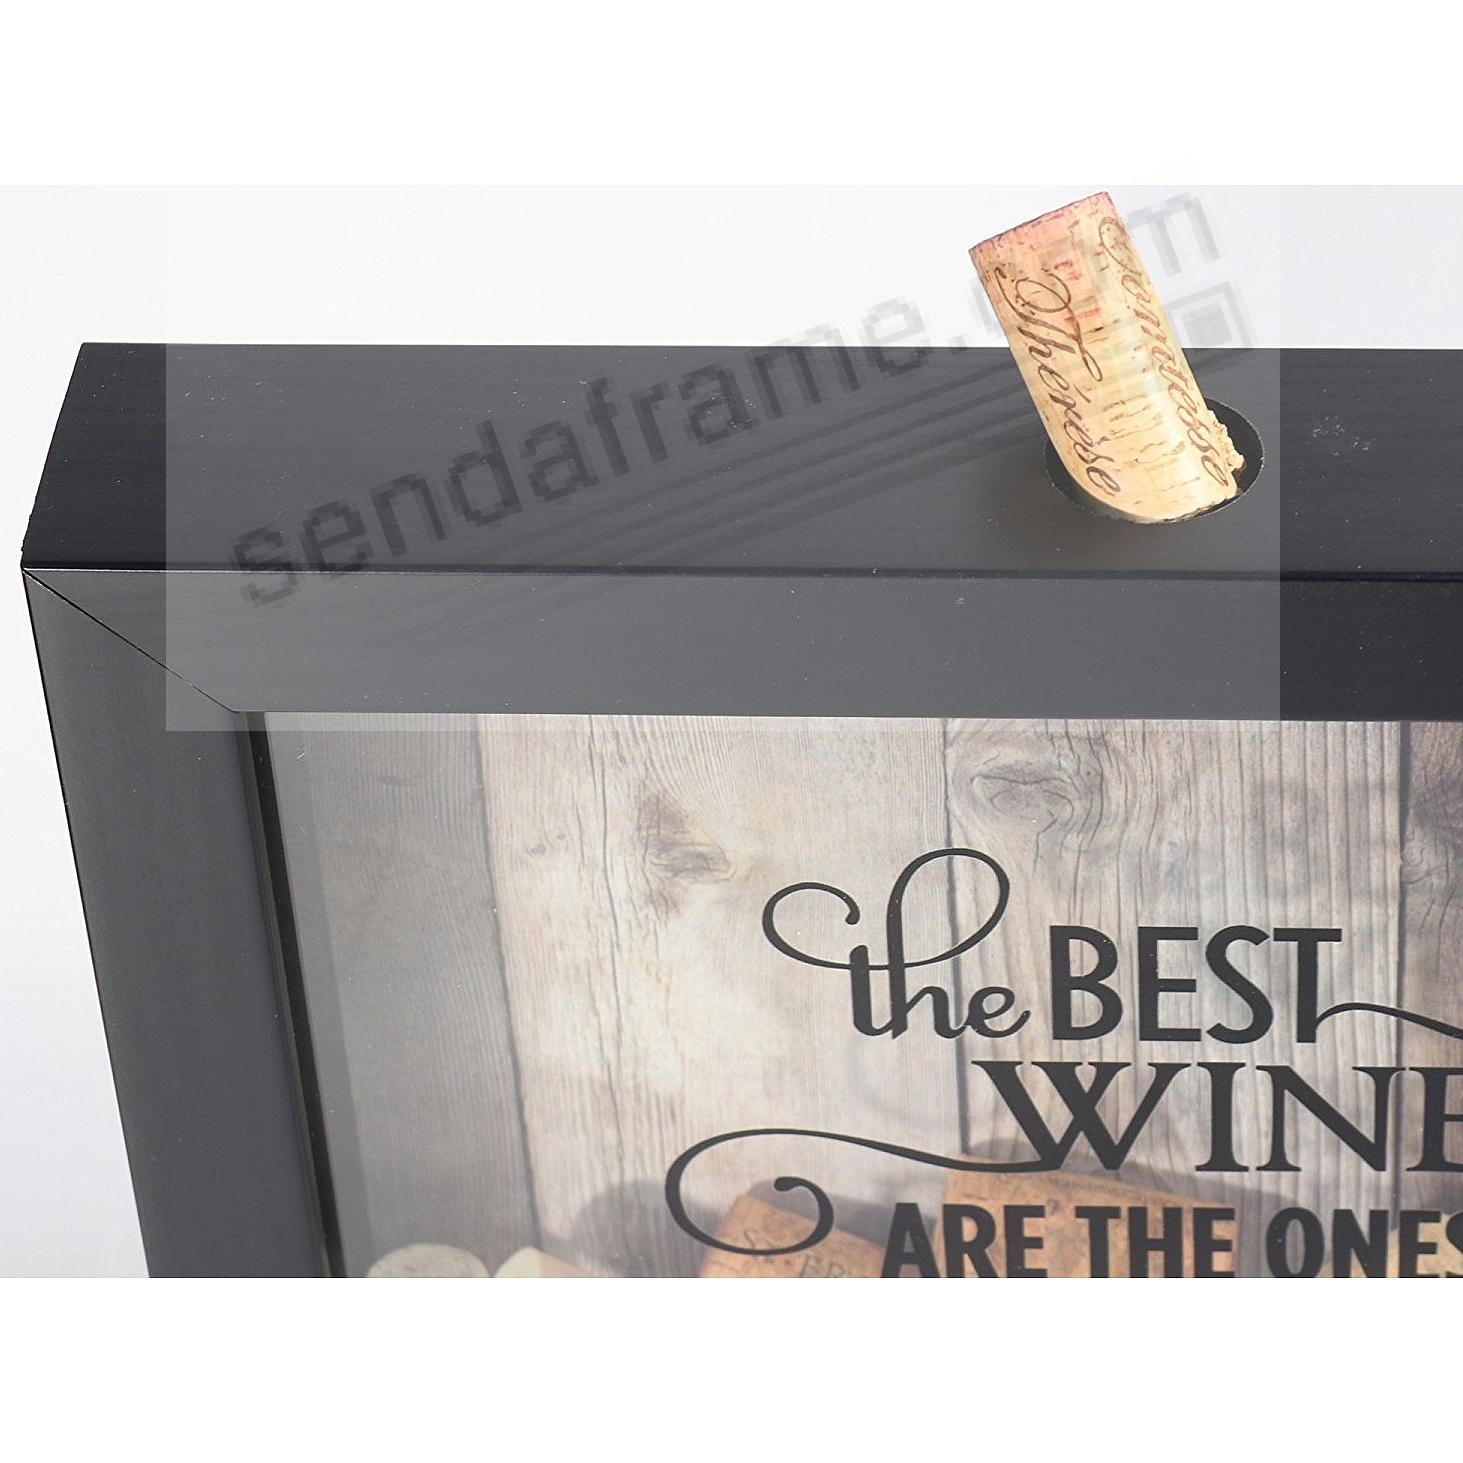 Corks insert easily